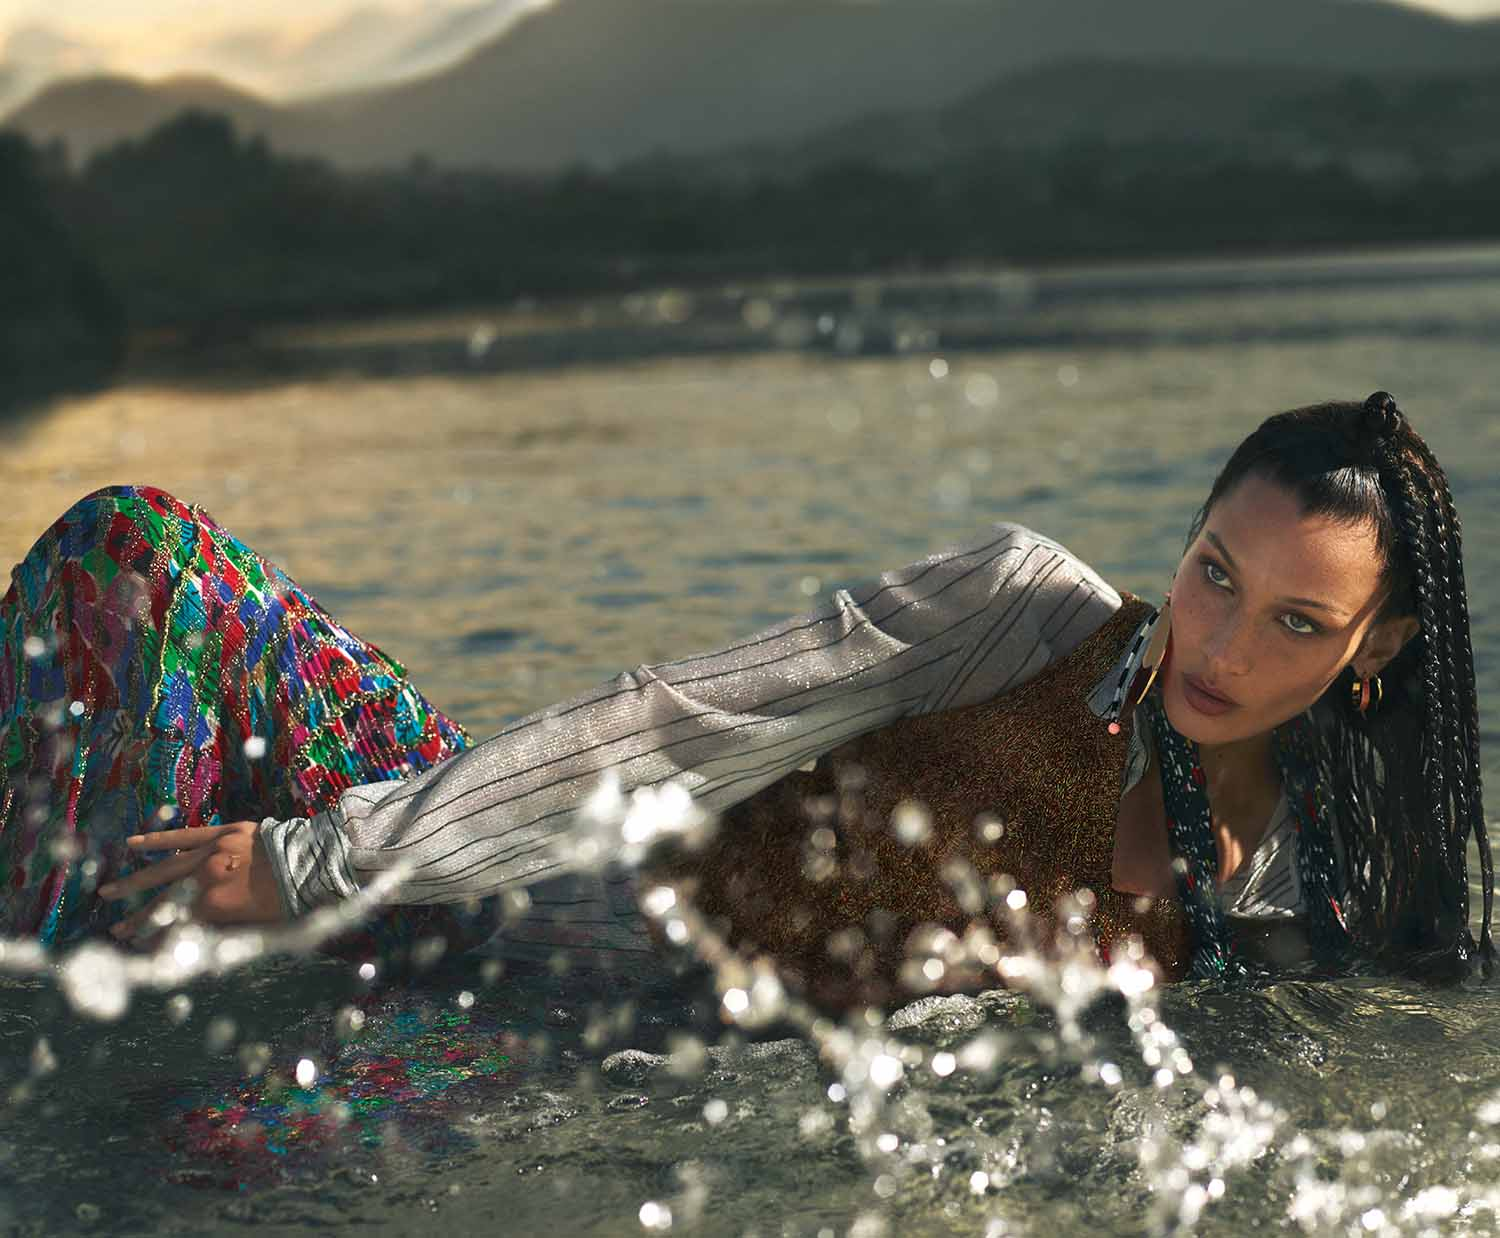 Missoni Spring/Summer 2020 Campaign: Ethereal, Vibrant, Intimate